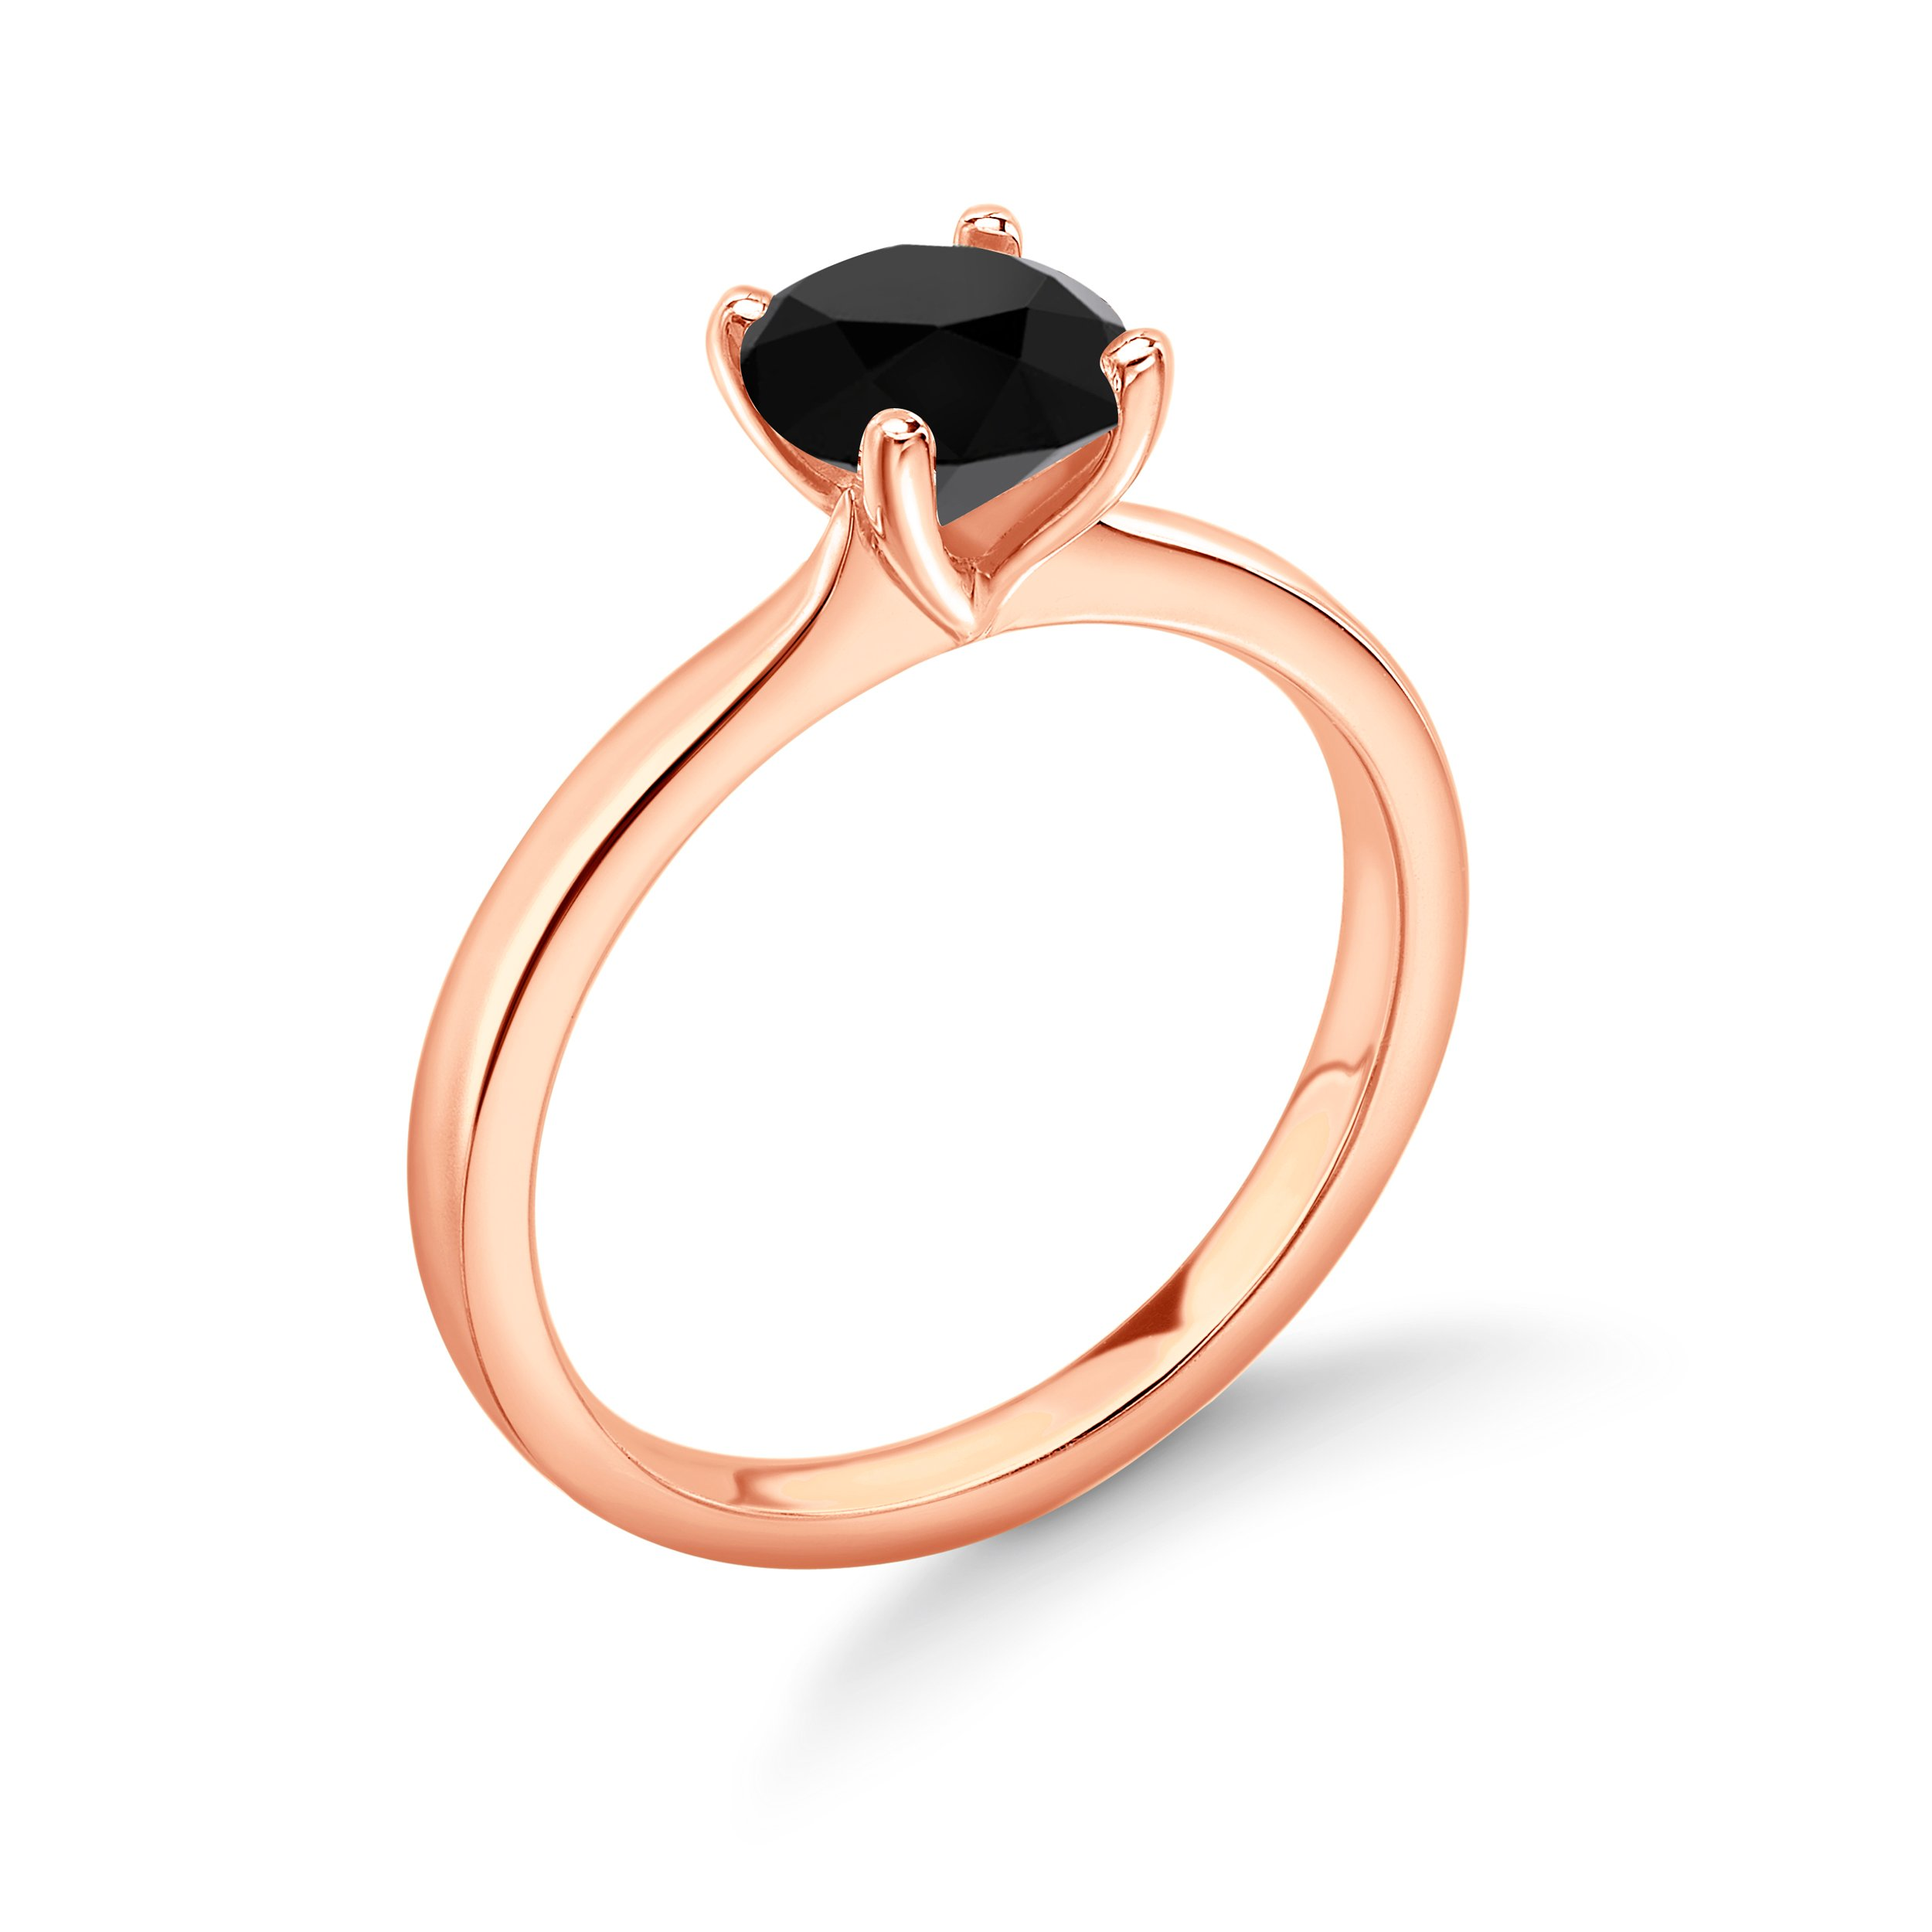 Round Solitaire Black Diamond Engagement Rings White/Rose Gold & Platinum